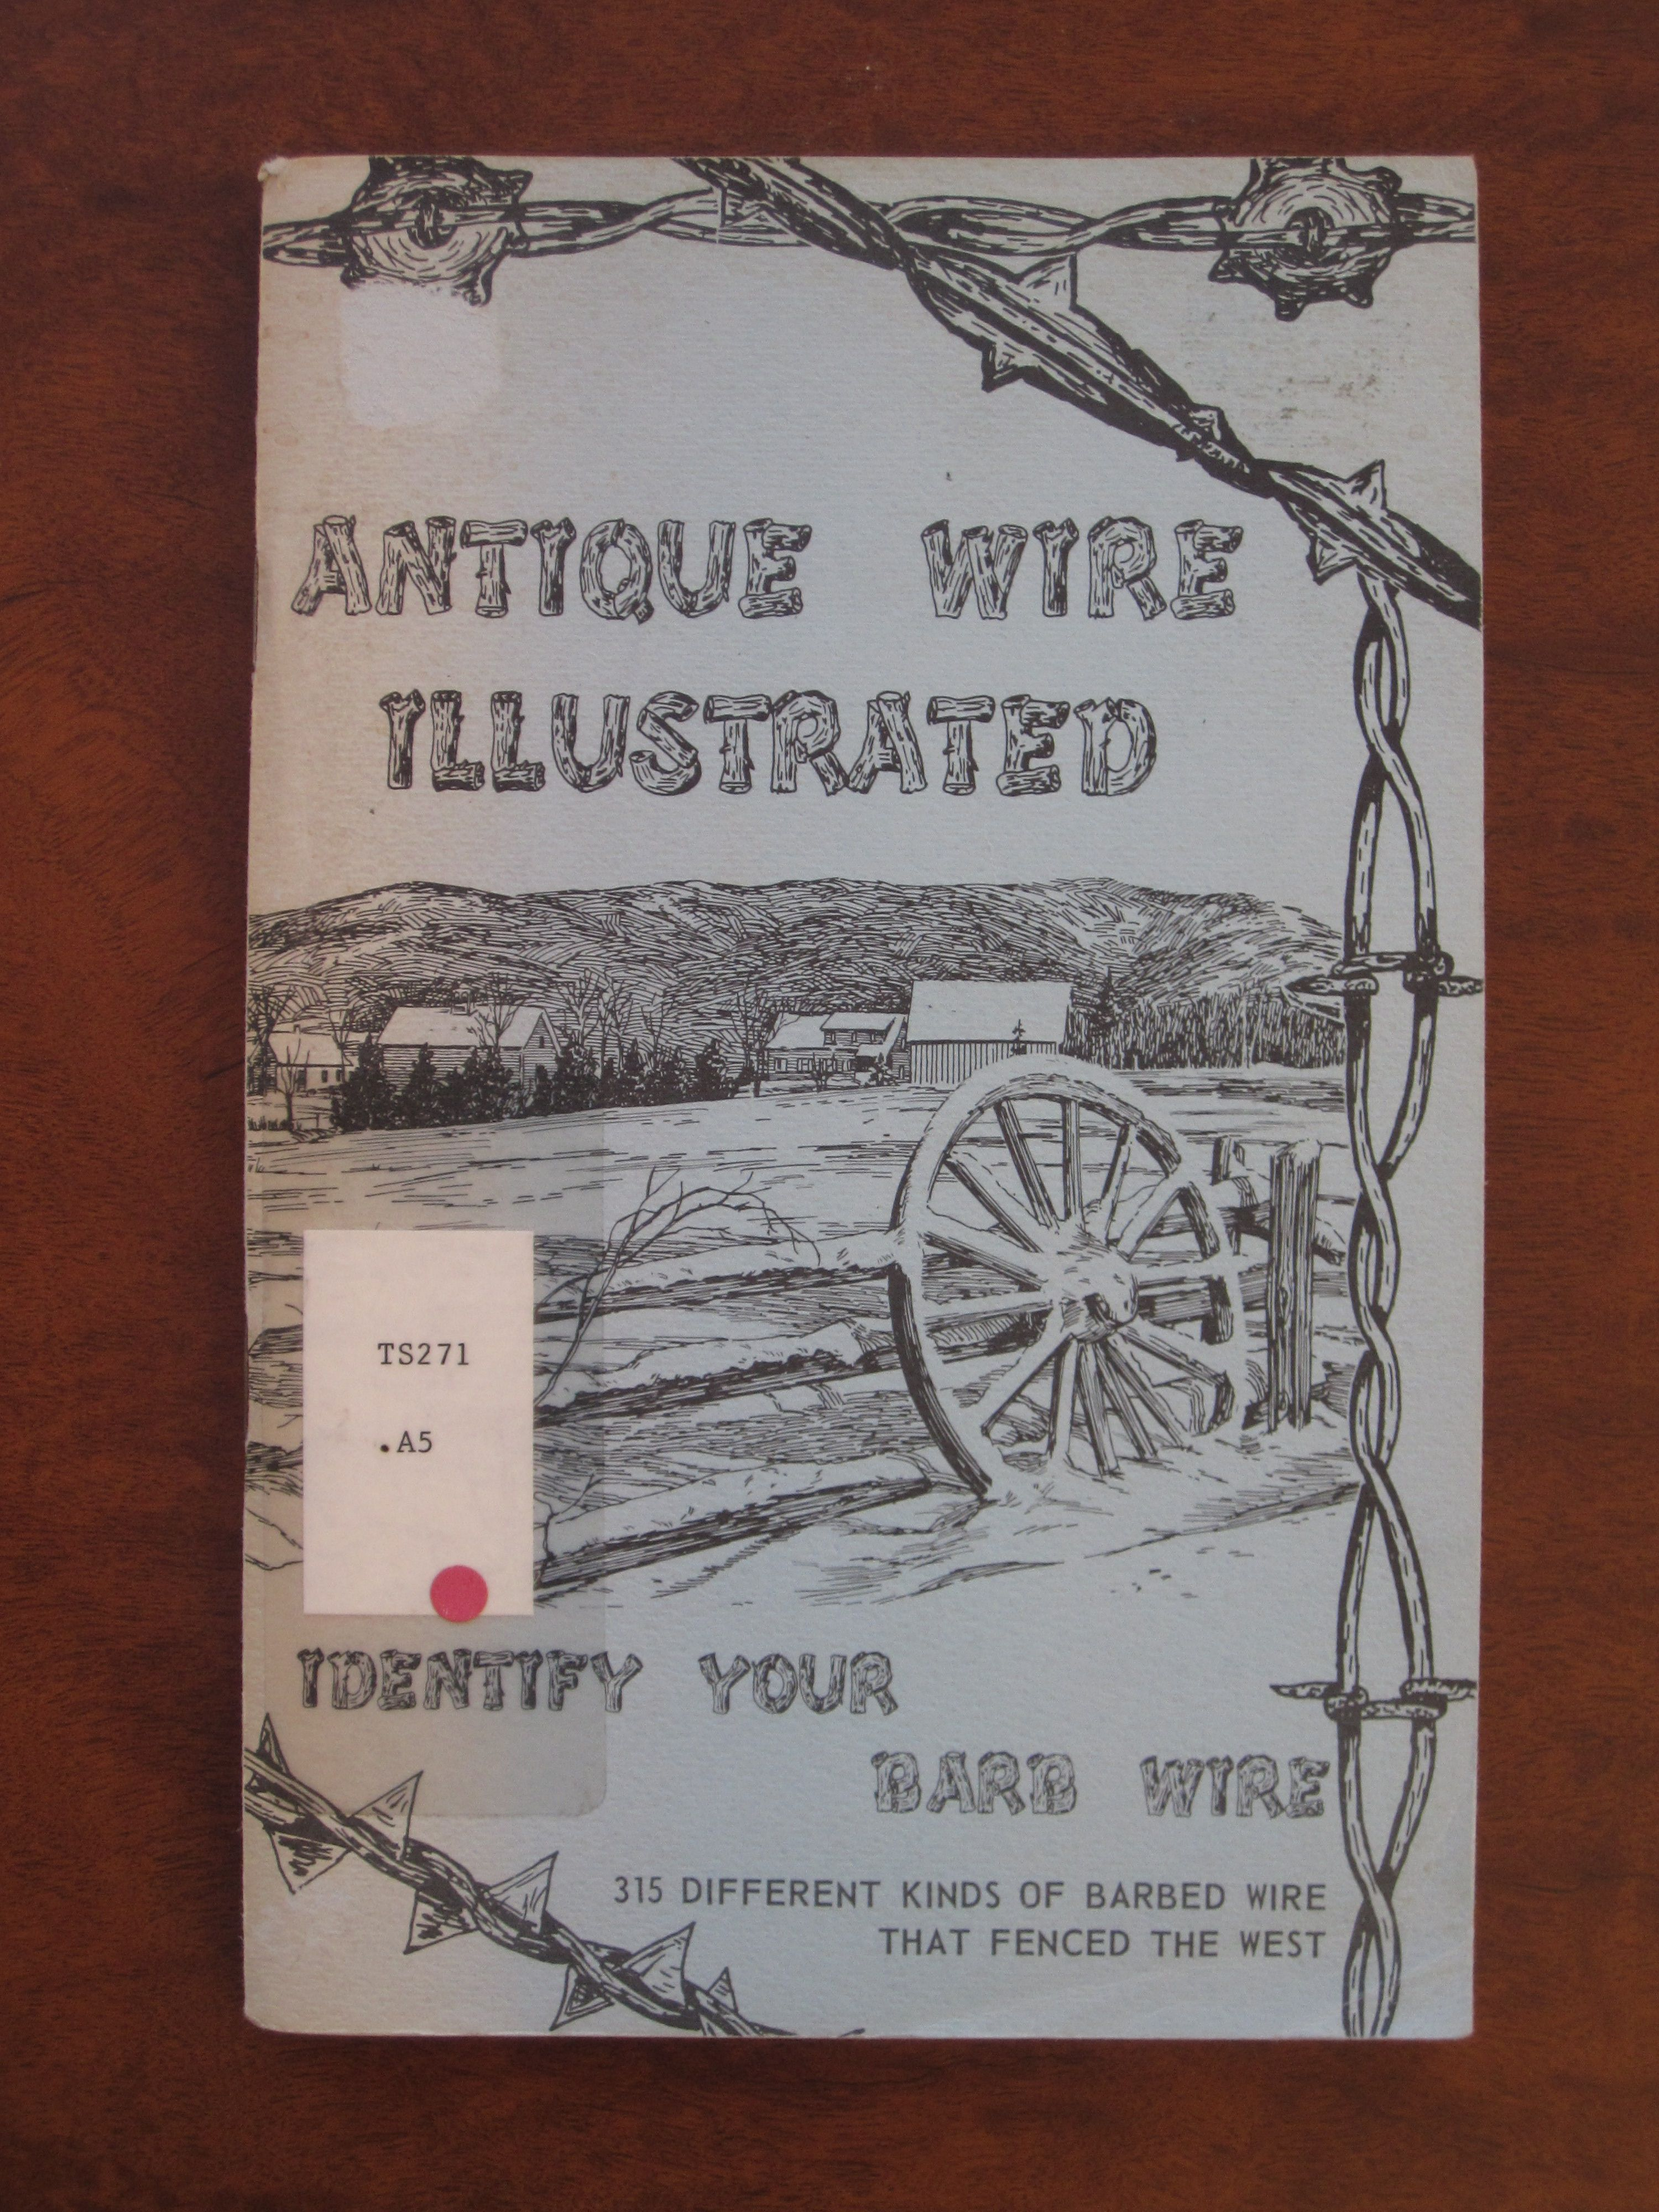 Antique Barb Wire Identification | wire 315 kinds of barbed wire ...